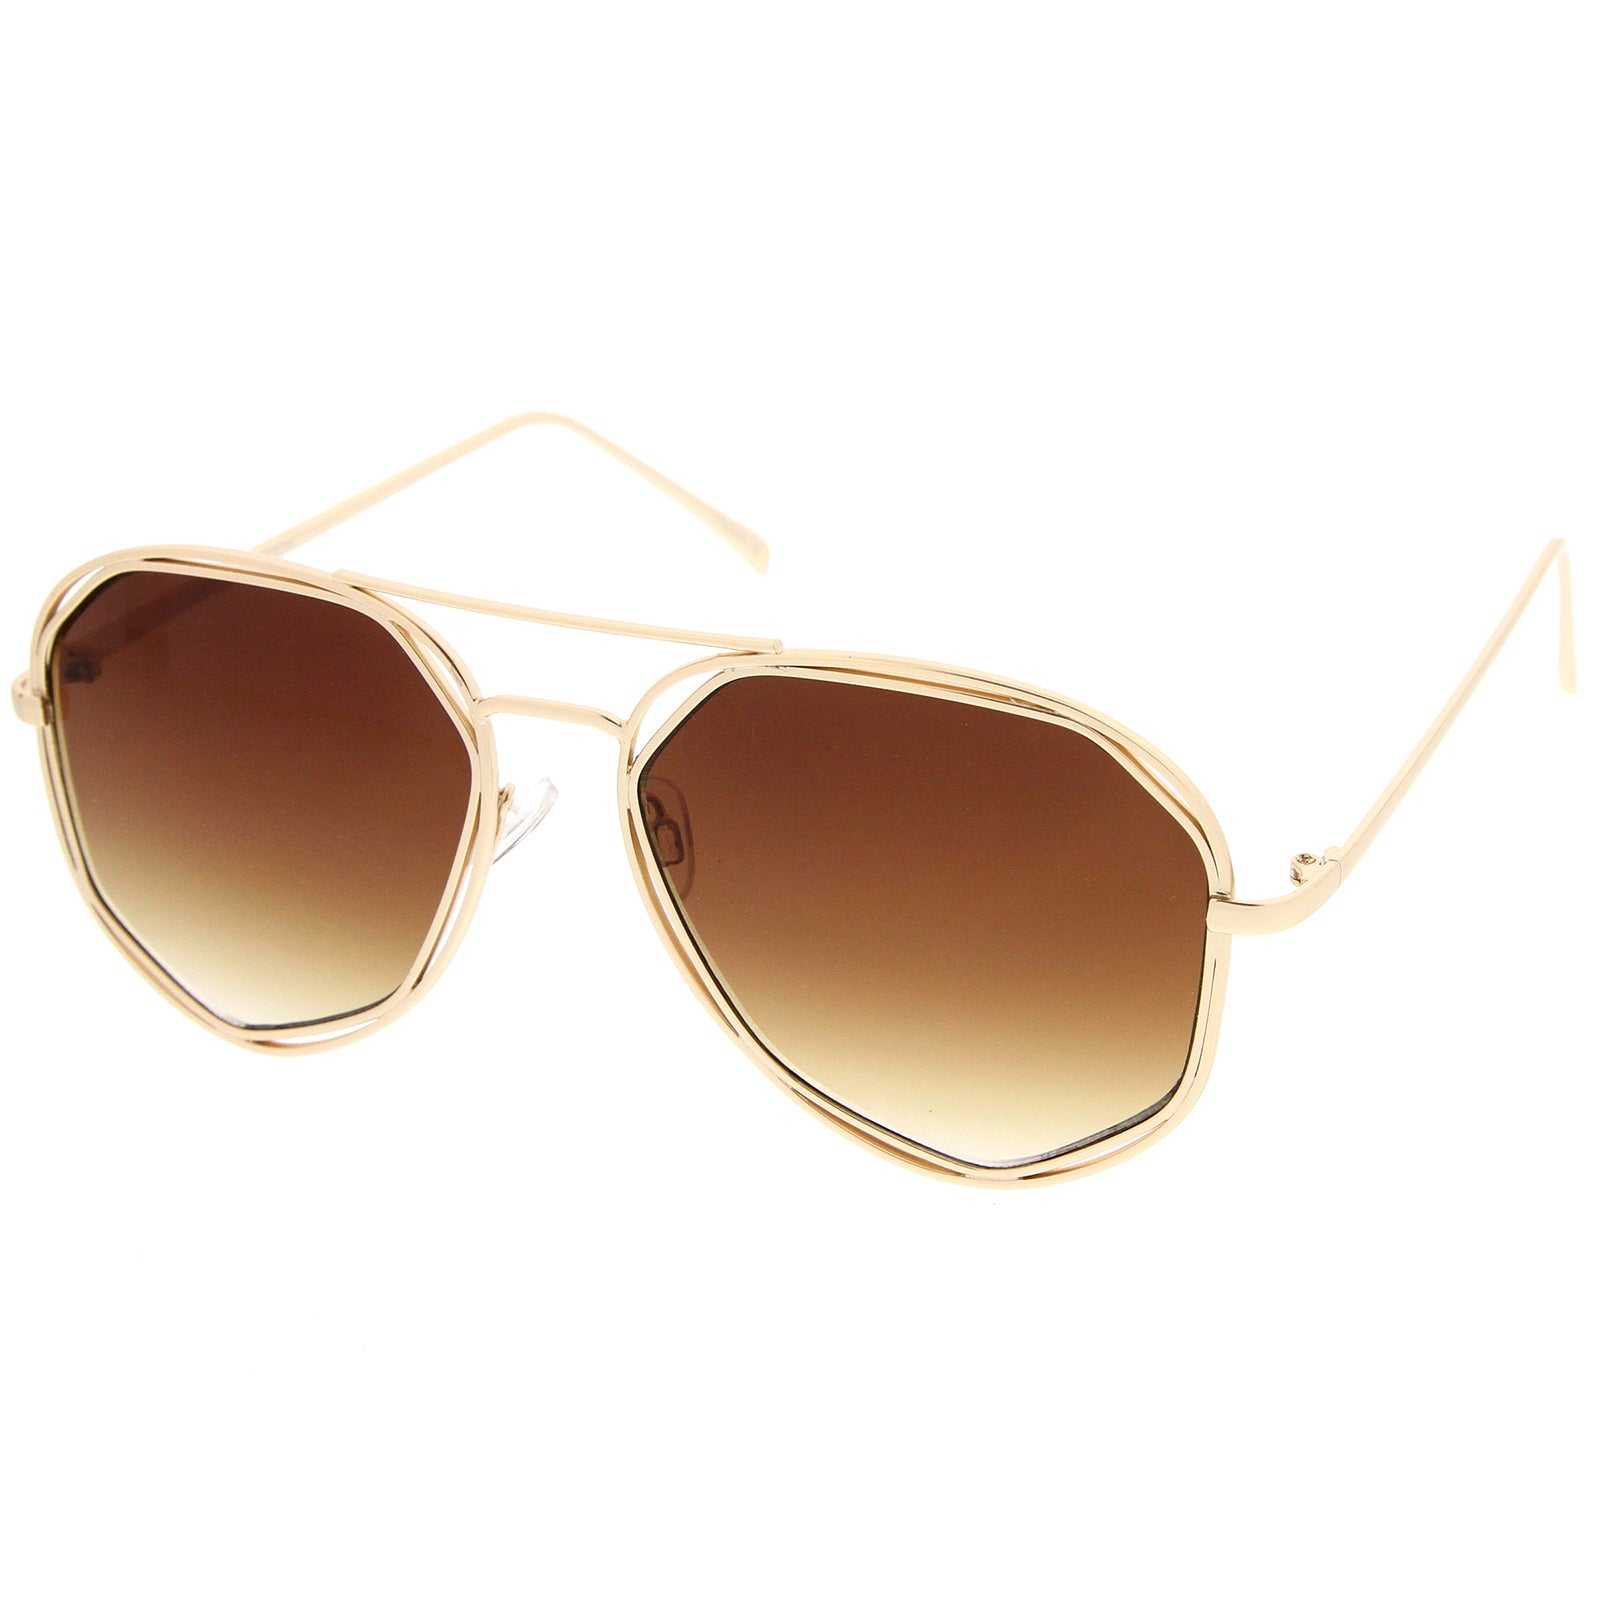 Geometric Hexagonal Metal Frame Neutral Colored Flat Lens Aviator Sunglasses 60mm - sunglass.la - 2